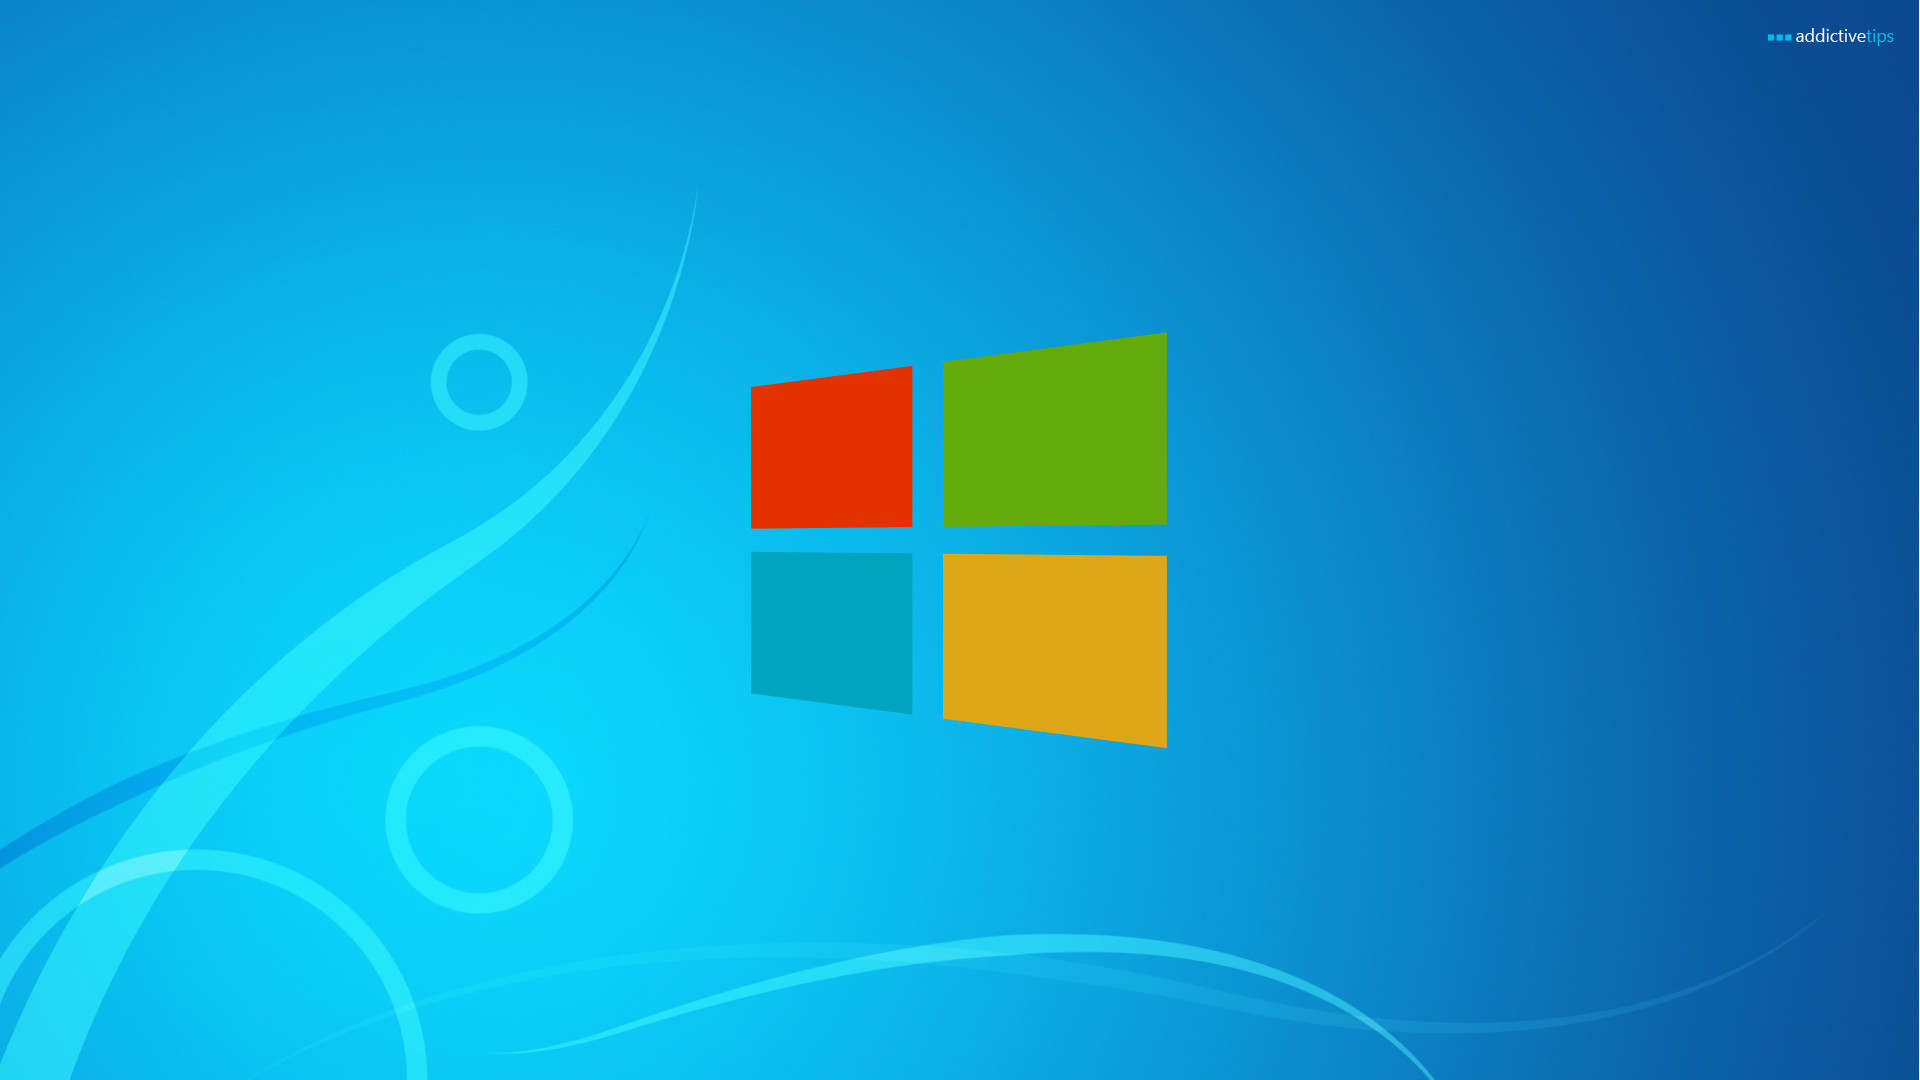 Animated Wallpaper Windows 8 Free Download Windows 10 Logo Hd Wallpaper 74 Images